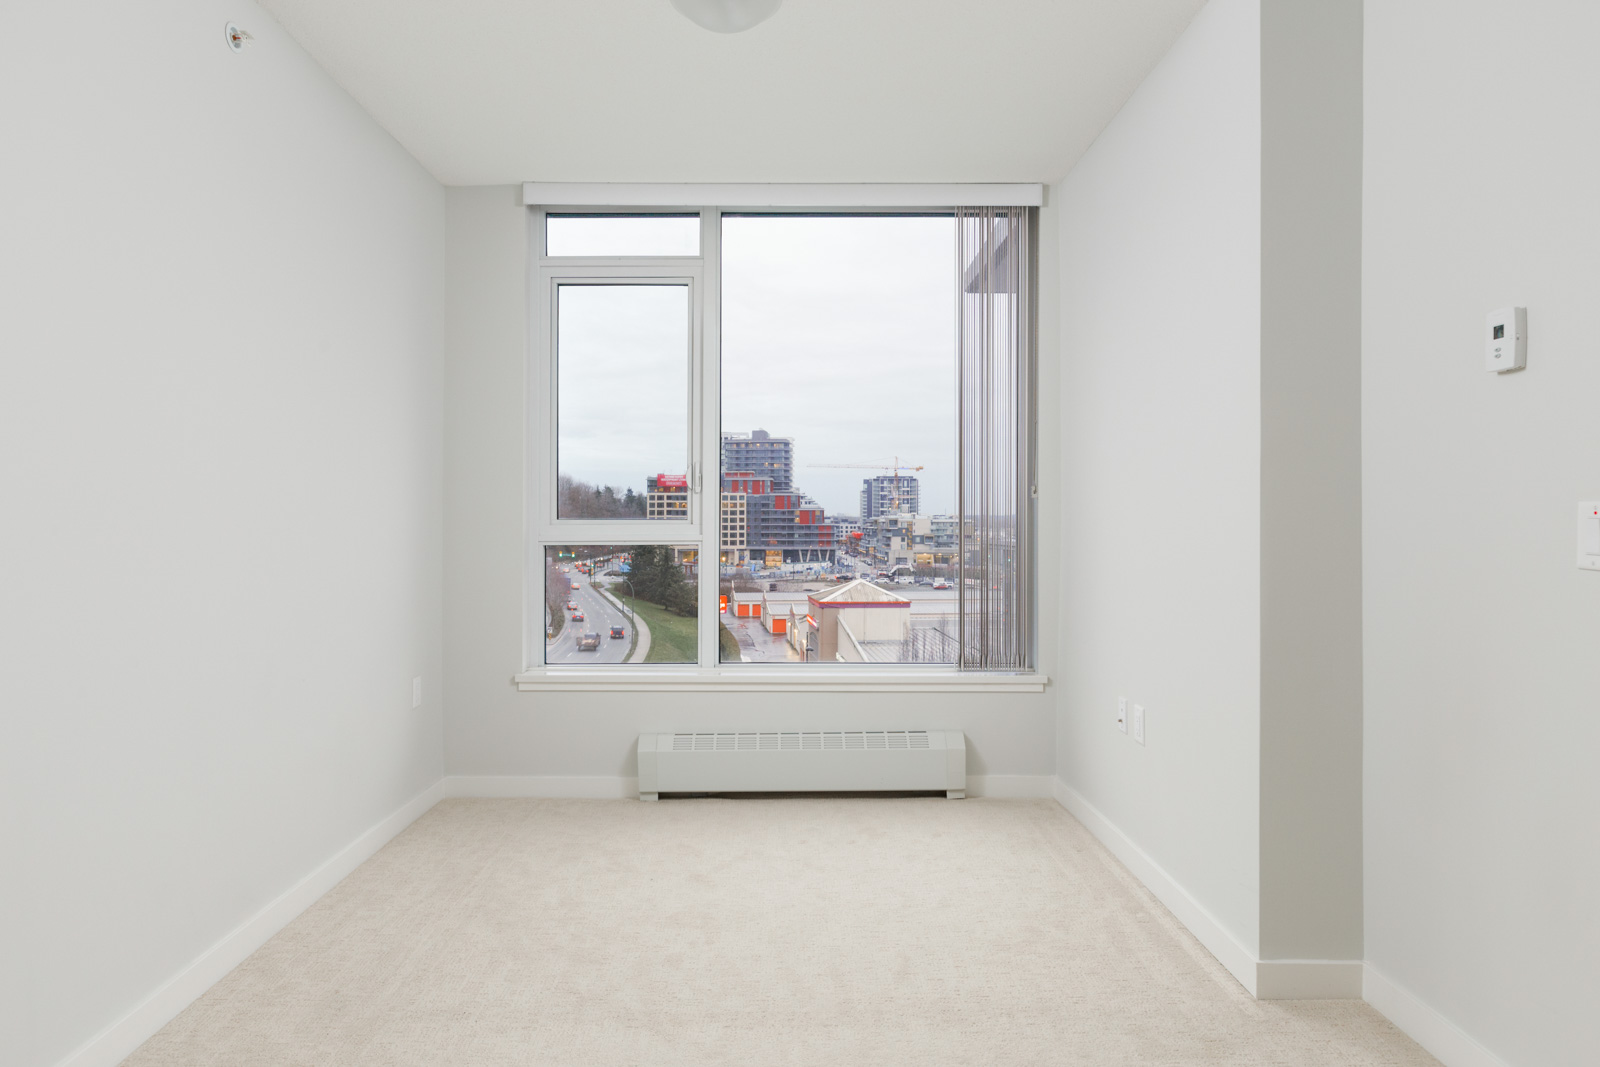 empty room in condo with white walls and carpeted floors and straight view of outside through large windows